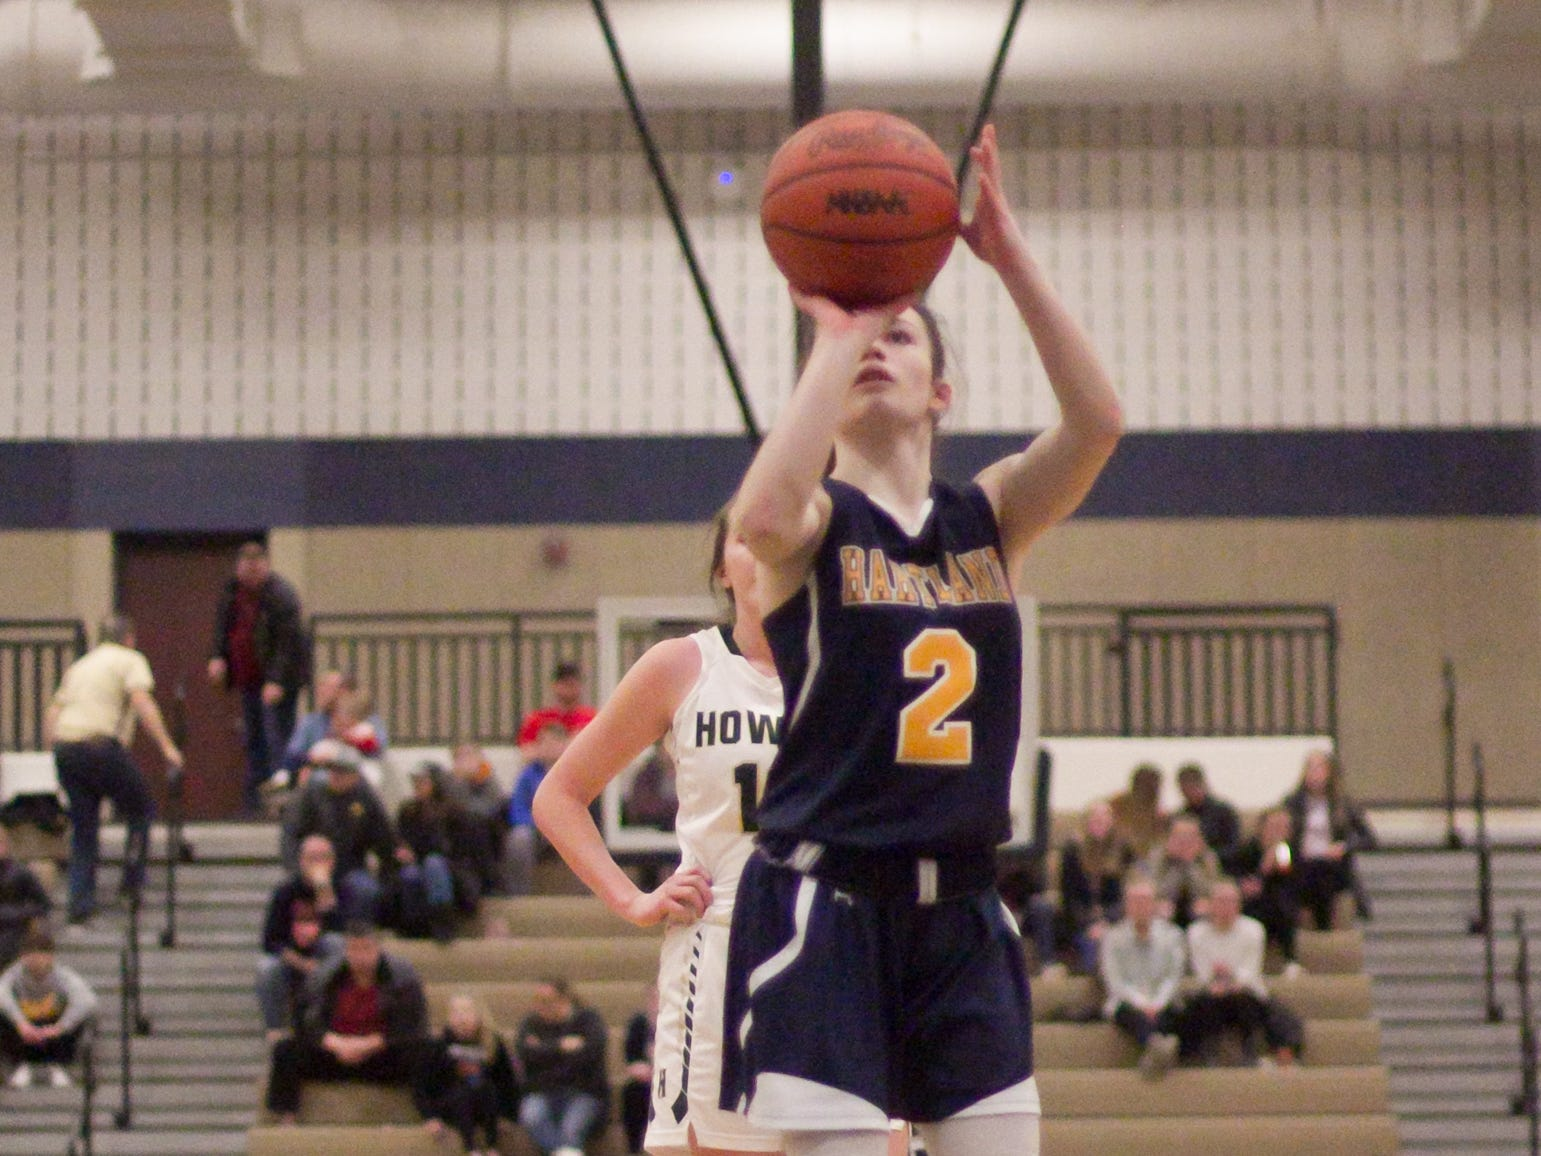 Hartland's Syd Caddell shoots a free throw in the fourth period of the district championship game against Howell Friday, March 8, 2019.